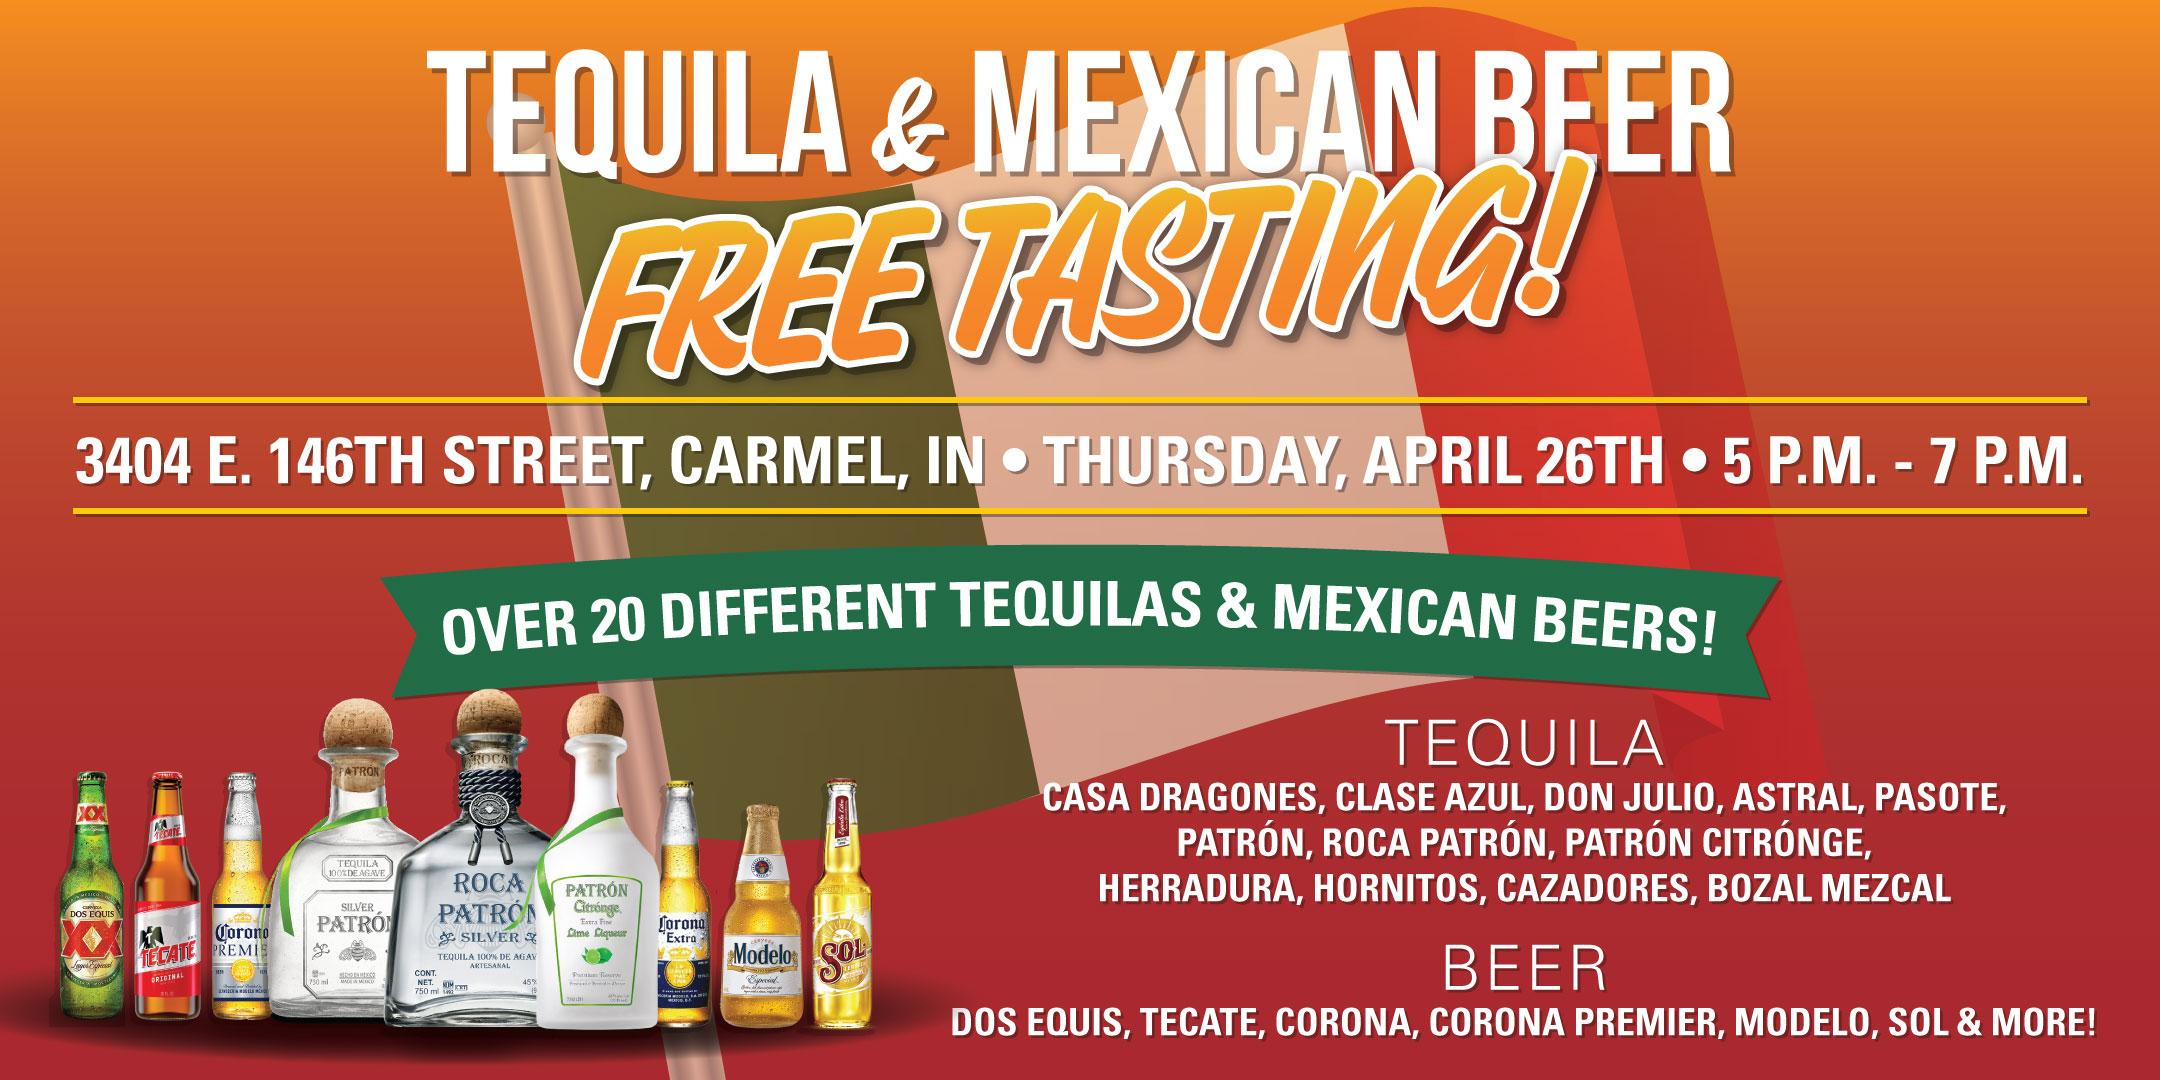 Tequila & Mexican Beer FREE Tasting